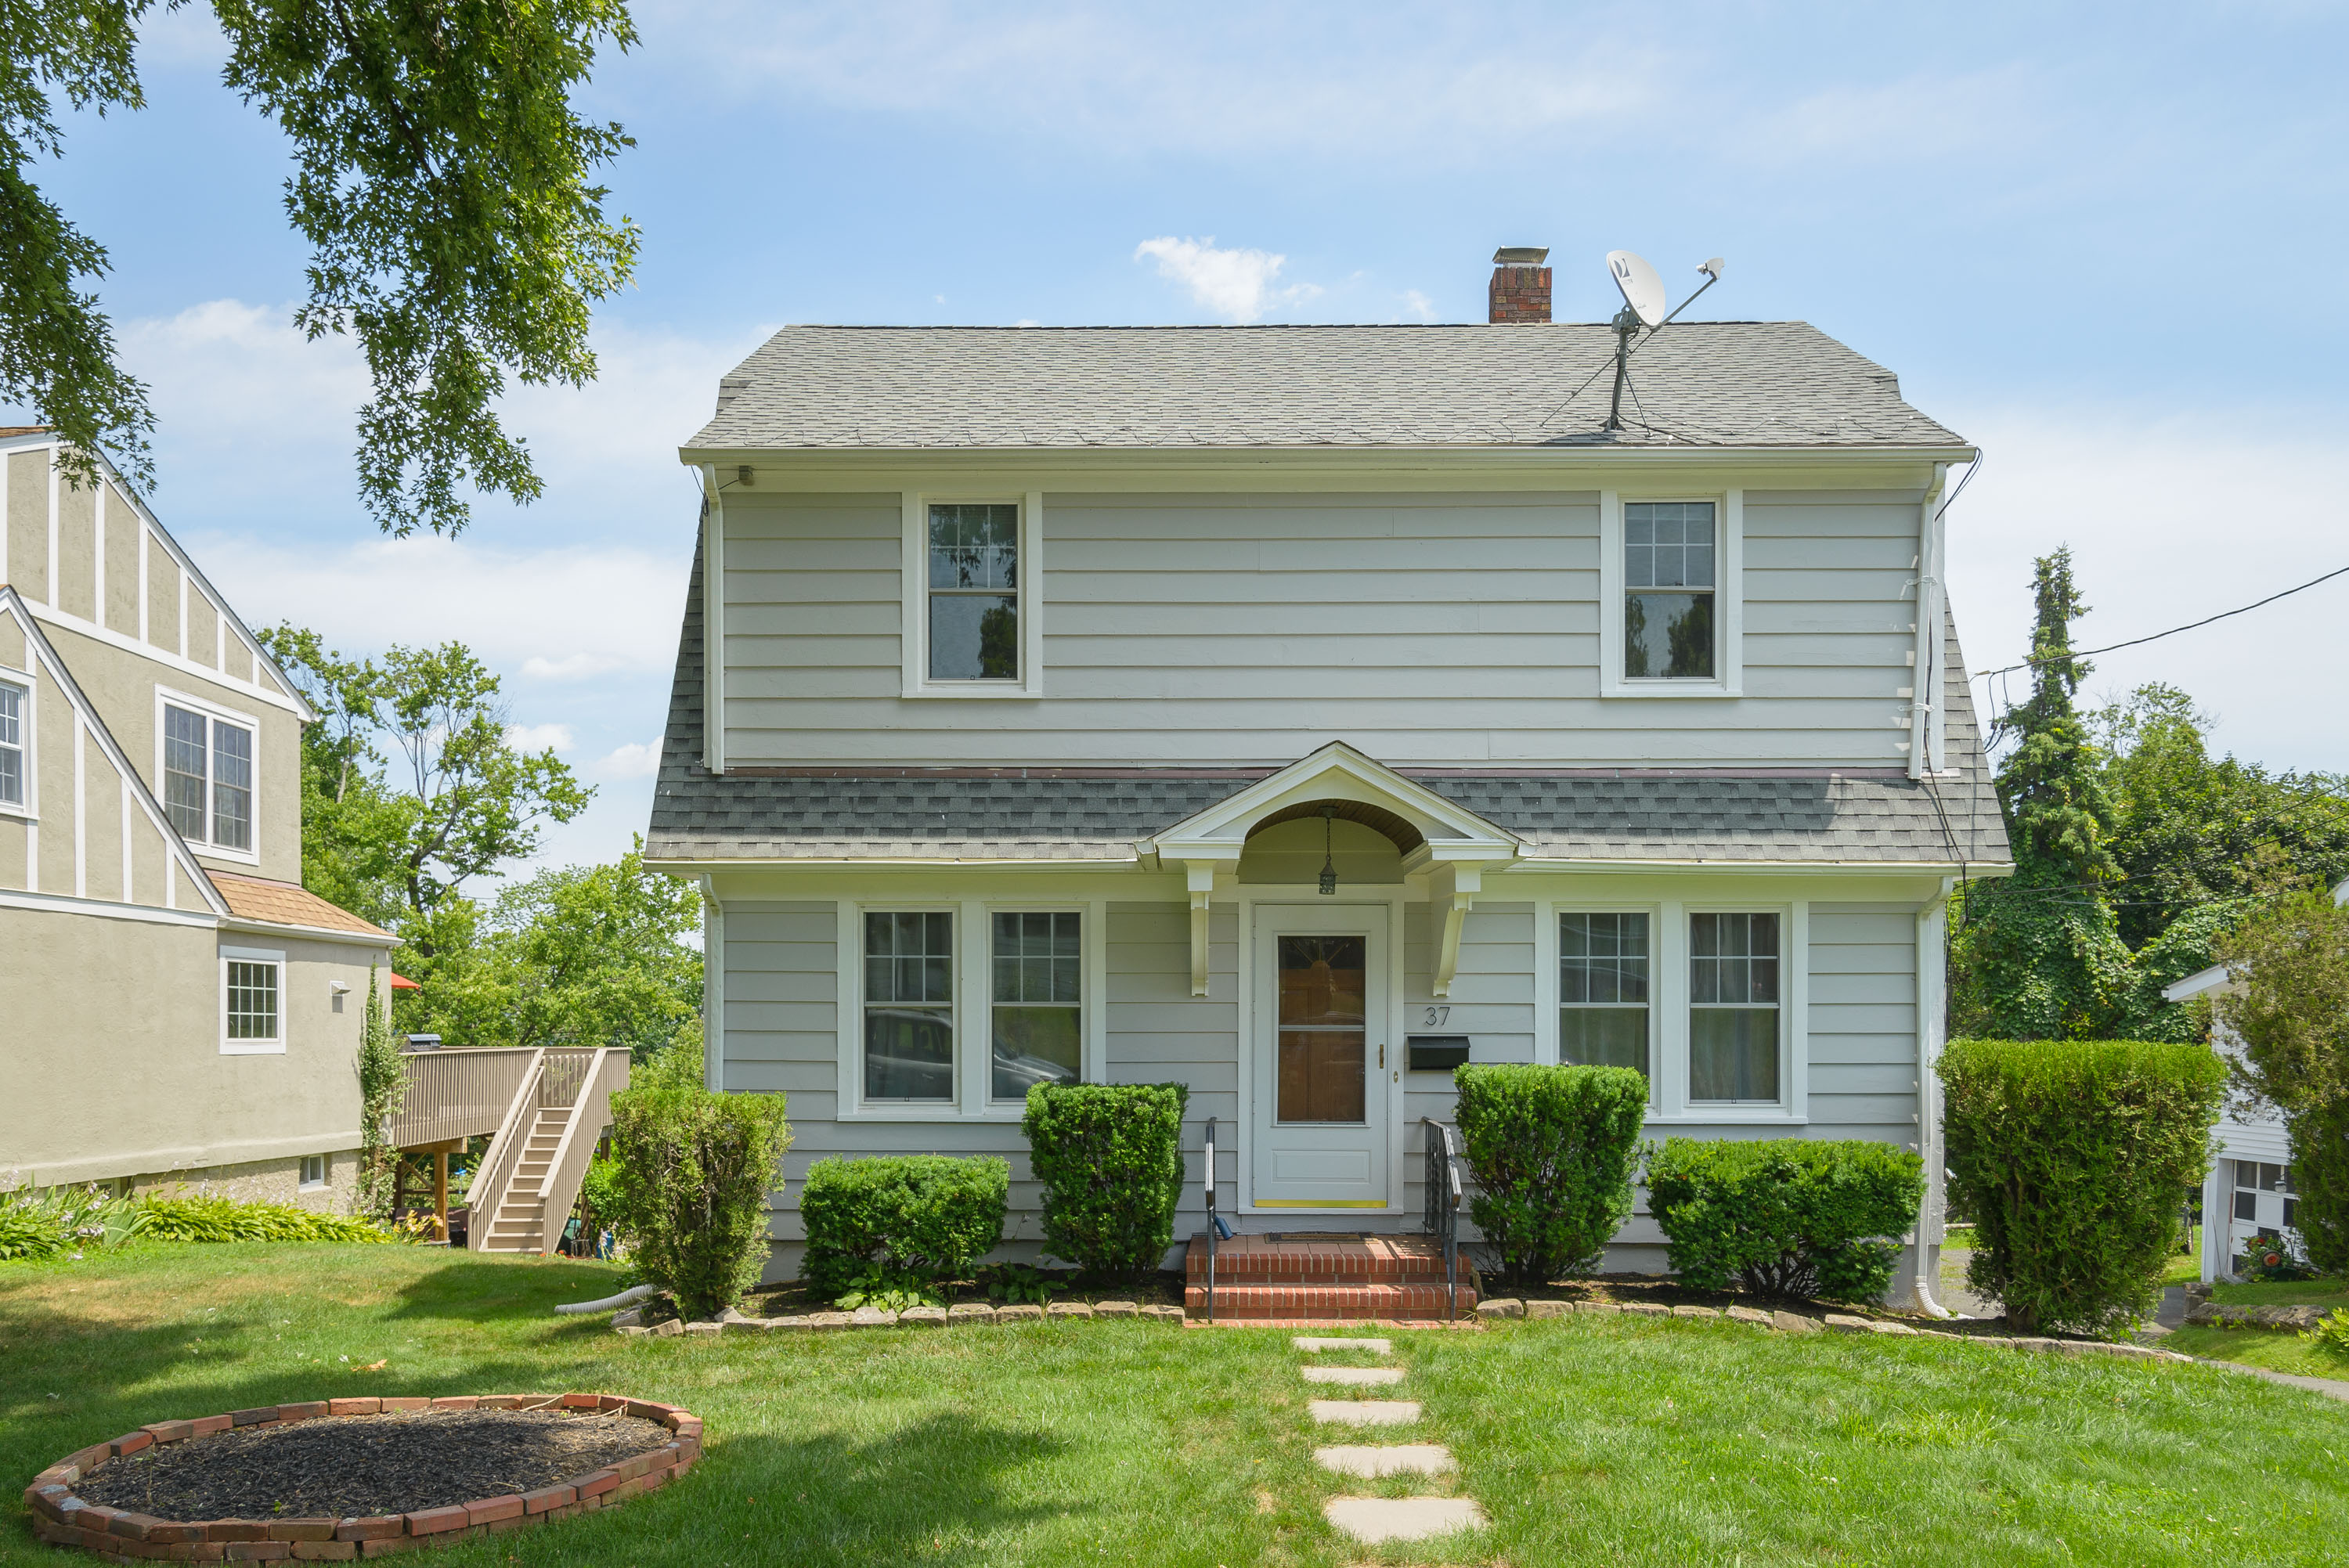 Single Family Home for Sale at Classic Colonial 37 Olive Street Danbury, Connecticut, 06810 United States